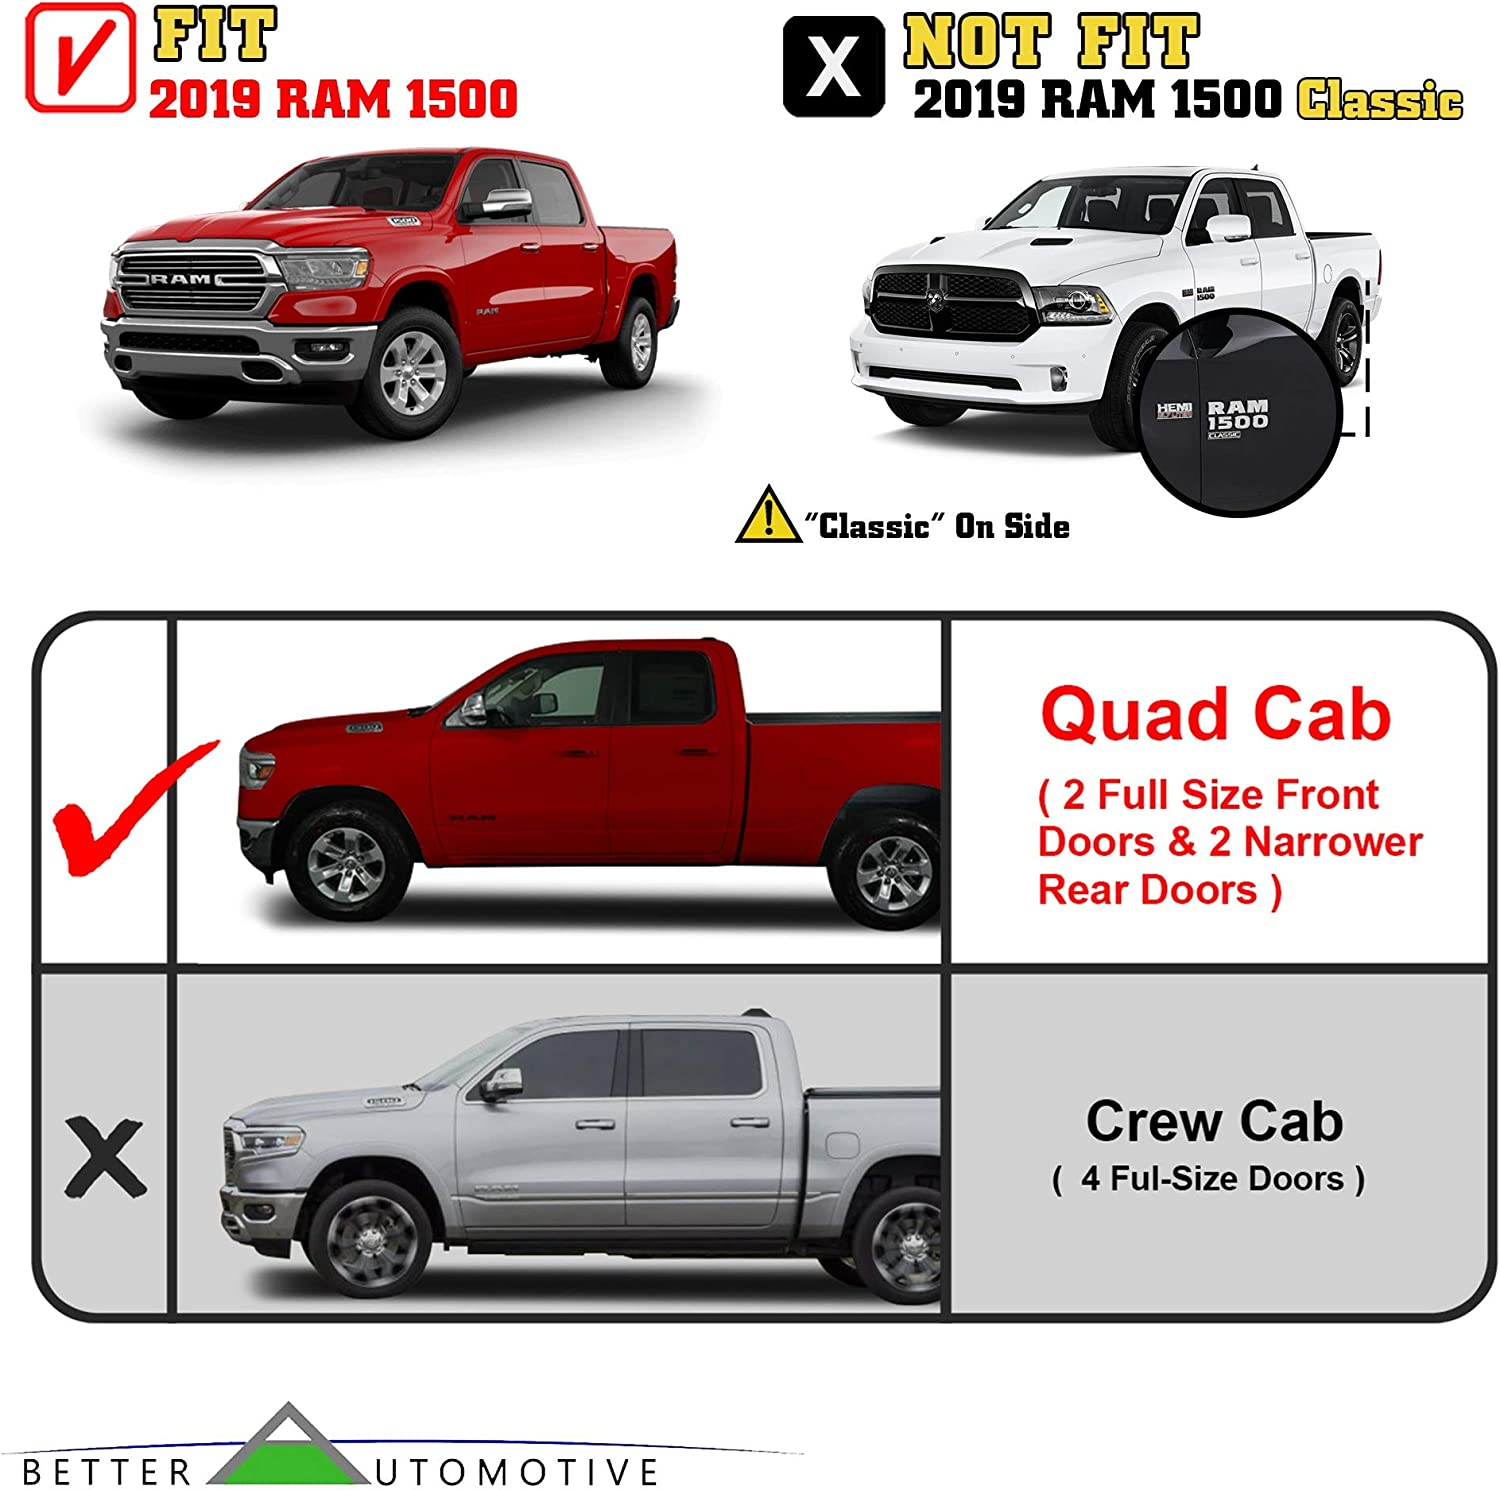 BETTER AUTOMOTIVE 5 Side Steps Compatible with 2019-2020 Dodge Ram 1500 Quad Cab Excl. 2019 Ram 1500 Classic Truck Pickup 5 Oval Bend Stainless Steel Running Boards Side Nerf Bars Off Road 2Pcs